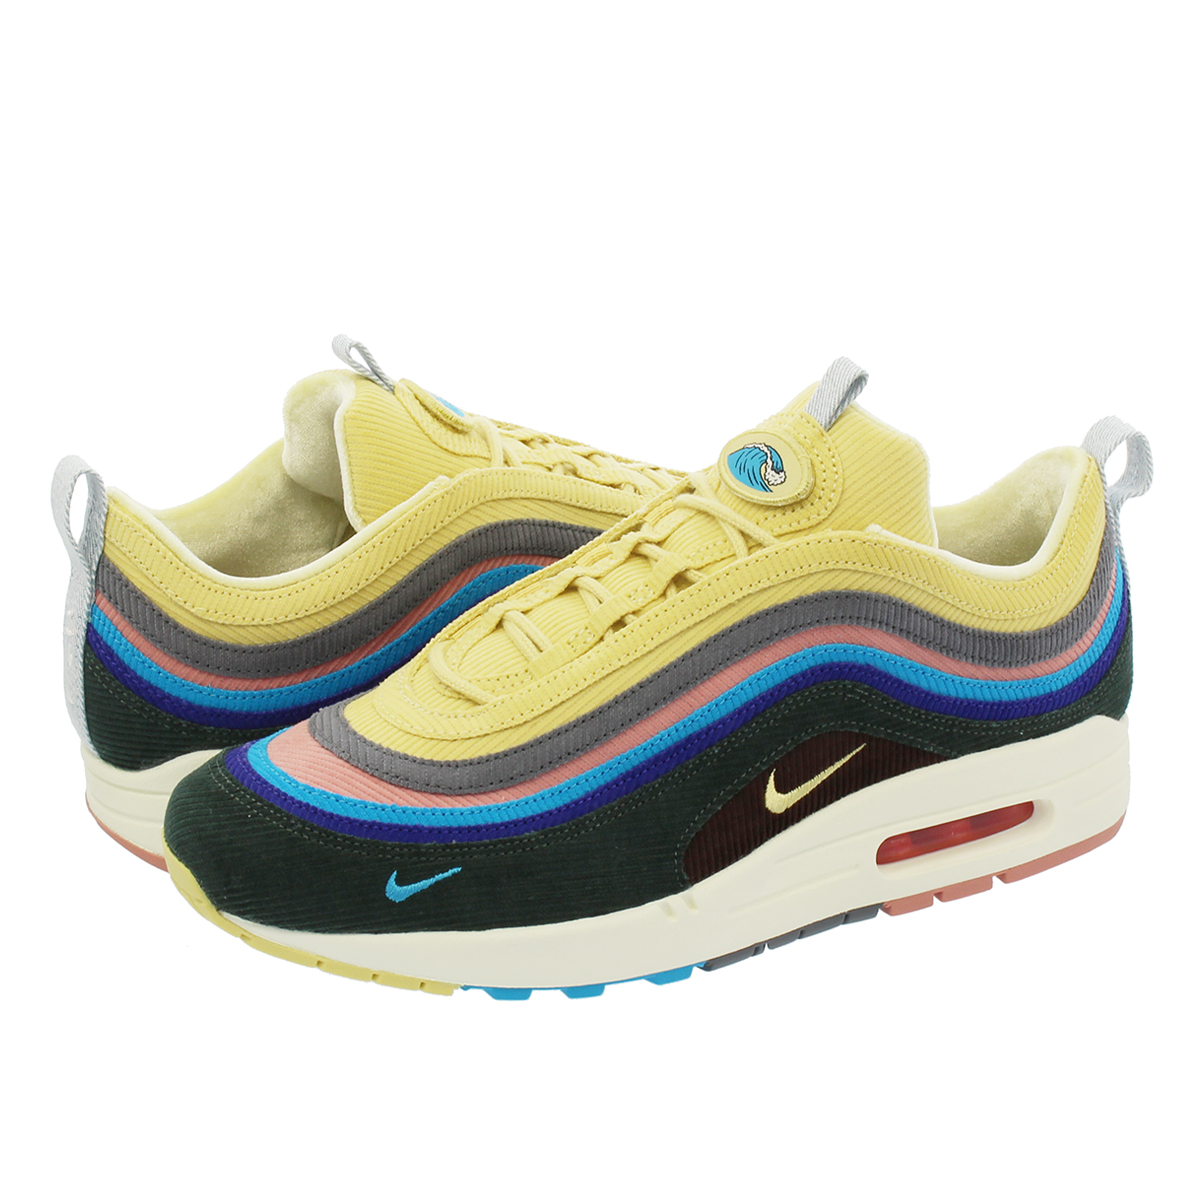 NIKE AIR MAX 1/97 V.F. SW NIKE AIR MAX 1/97 V.F. Sean weather spoon LIGHT BLUE FURY/LEMON WASH